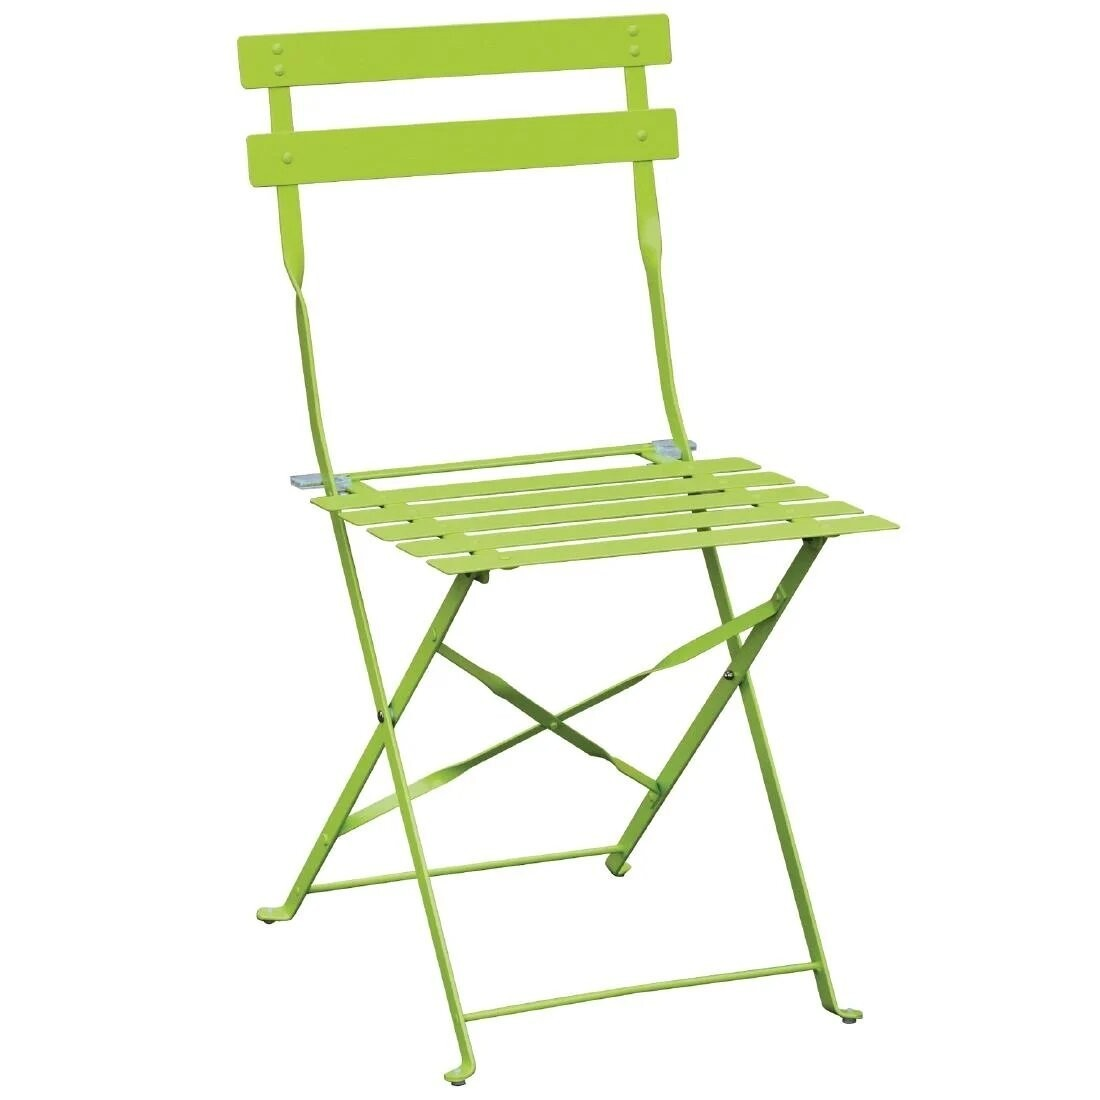 Bolero GH552 Green Steel Frame & Seat Pavement Style Folding Chairs - Pack 2